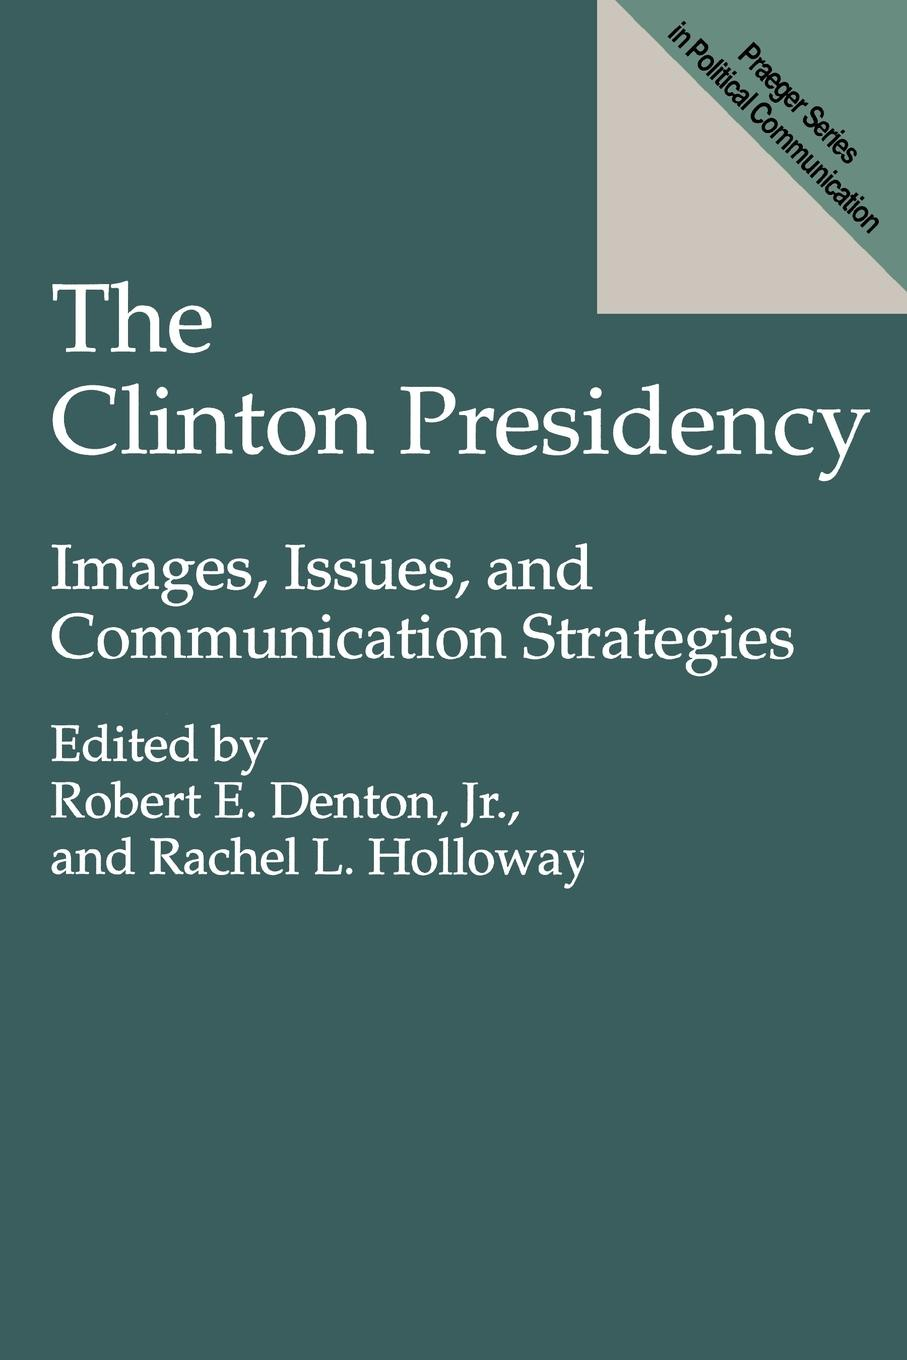 The Clinton Presidency. Images, Issues, and Communication Strategies mohammad moazen and reza kafipour communication strategies